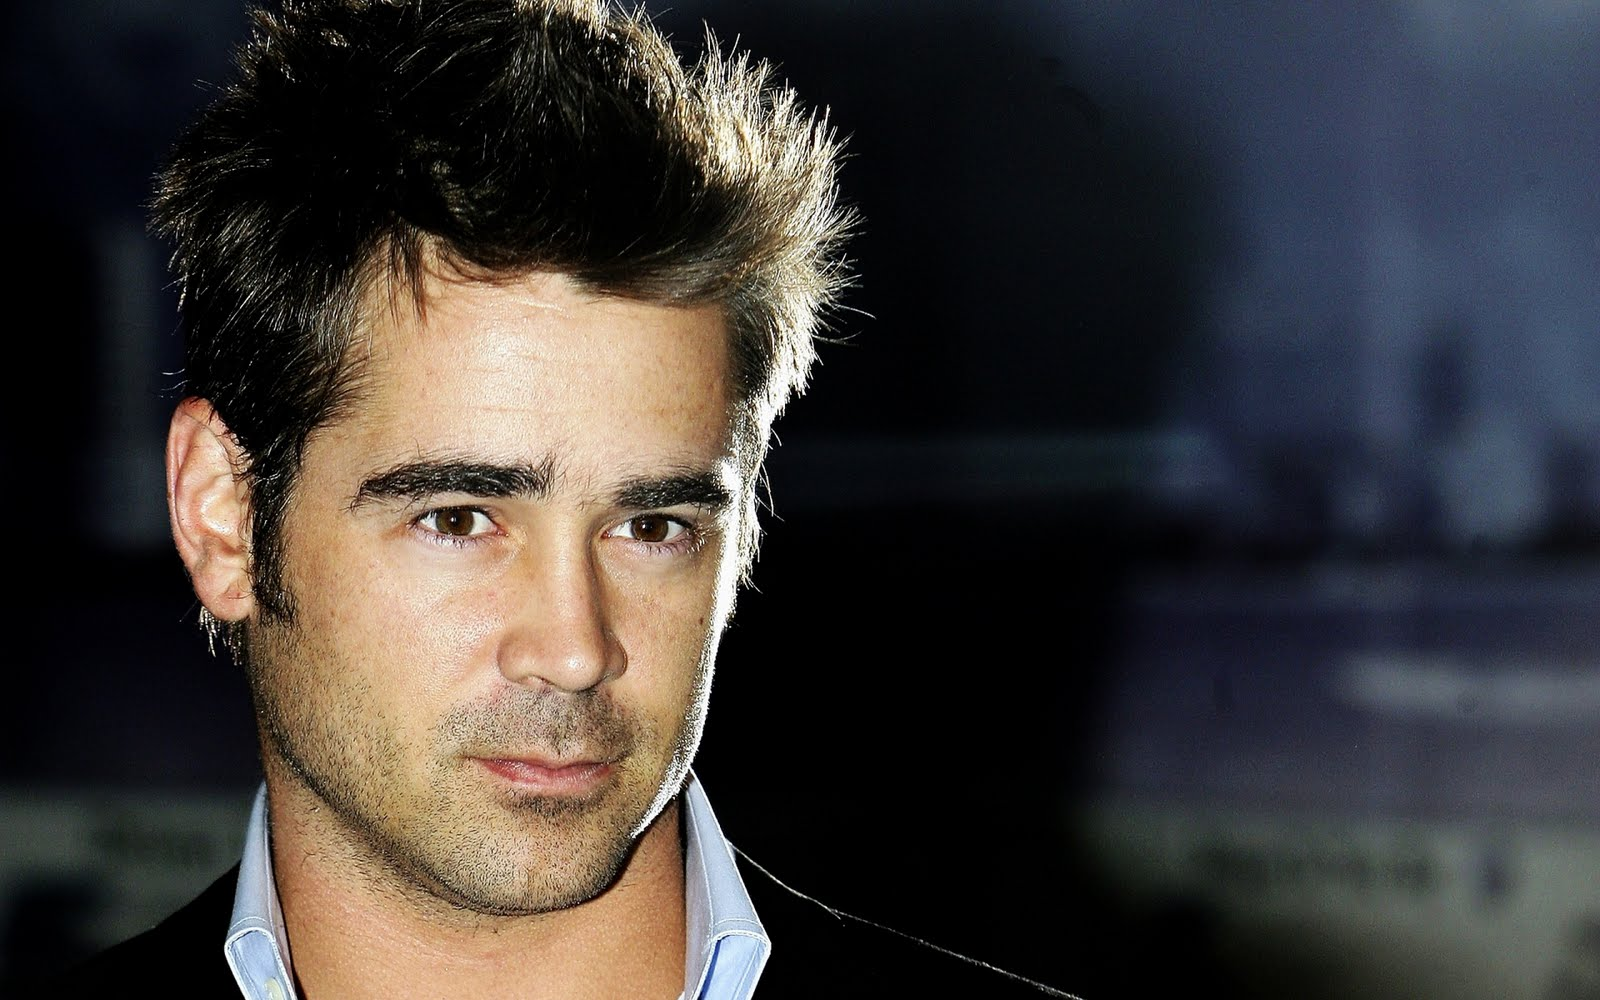 Hombres, actores y artistas - Colin-James farrell